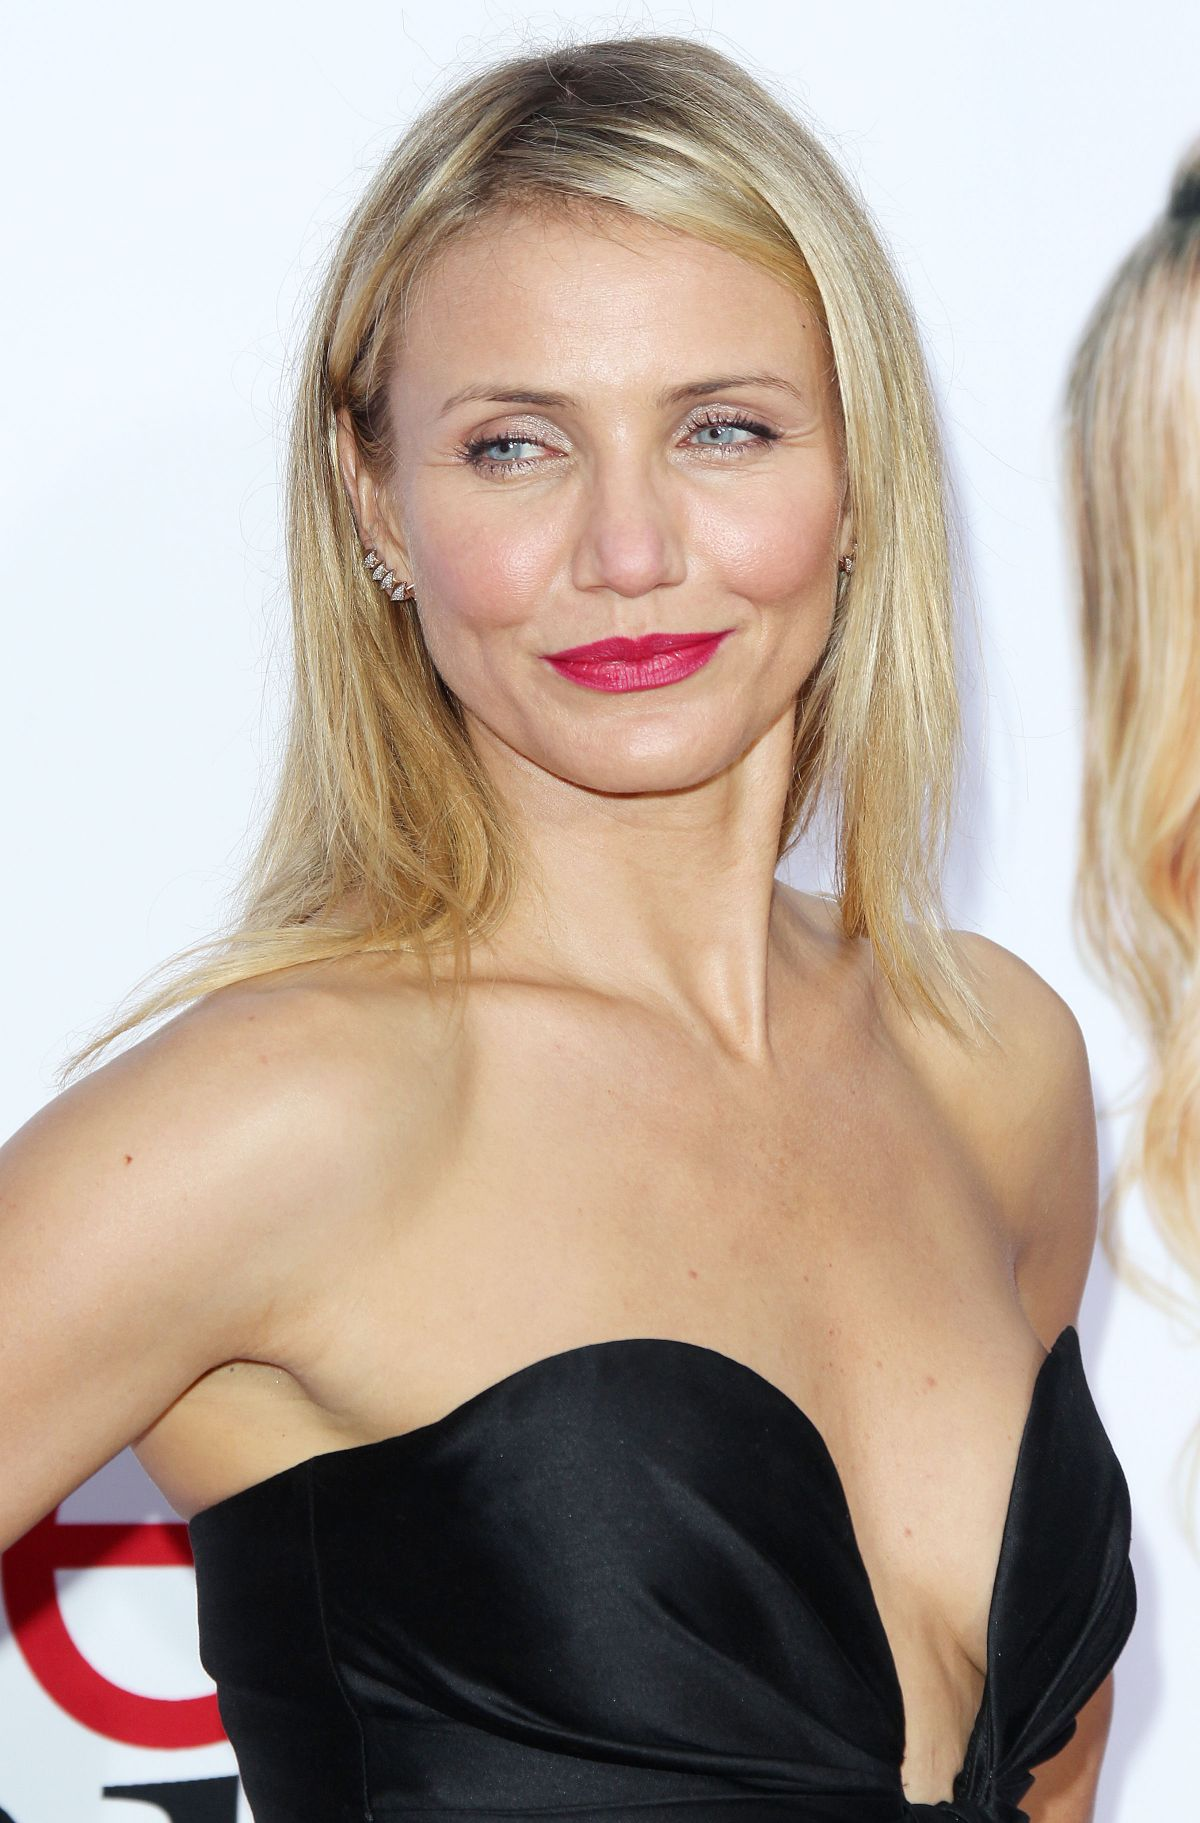 1000+ ideas about Cameron Diaz Pregnant on Pinterest | Cameron Diaz